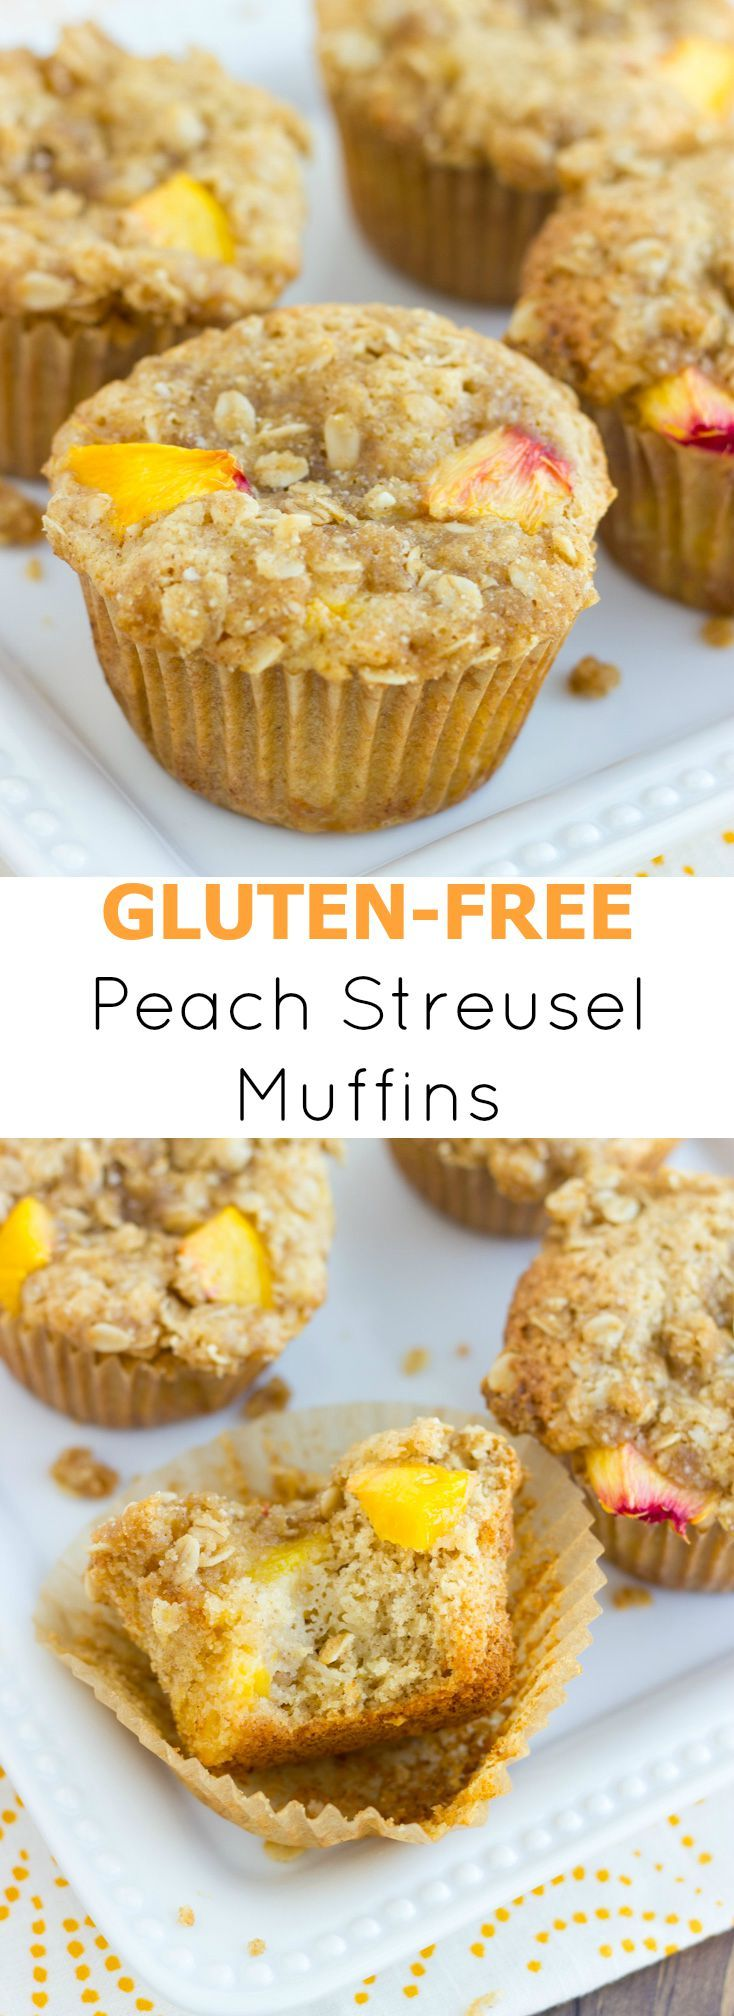 Gluten-Free Peach Streusel Muffins! Tender, and moist, these gluten-free muffins are filled with peaches and topped with a sweet oat streusel. // @MeaningfulEats